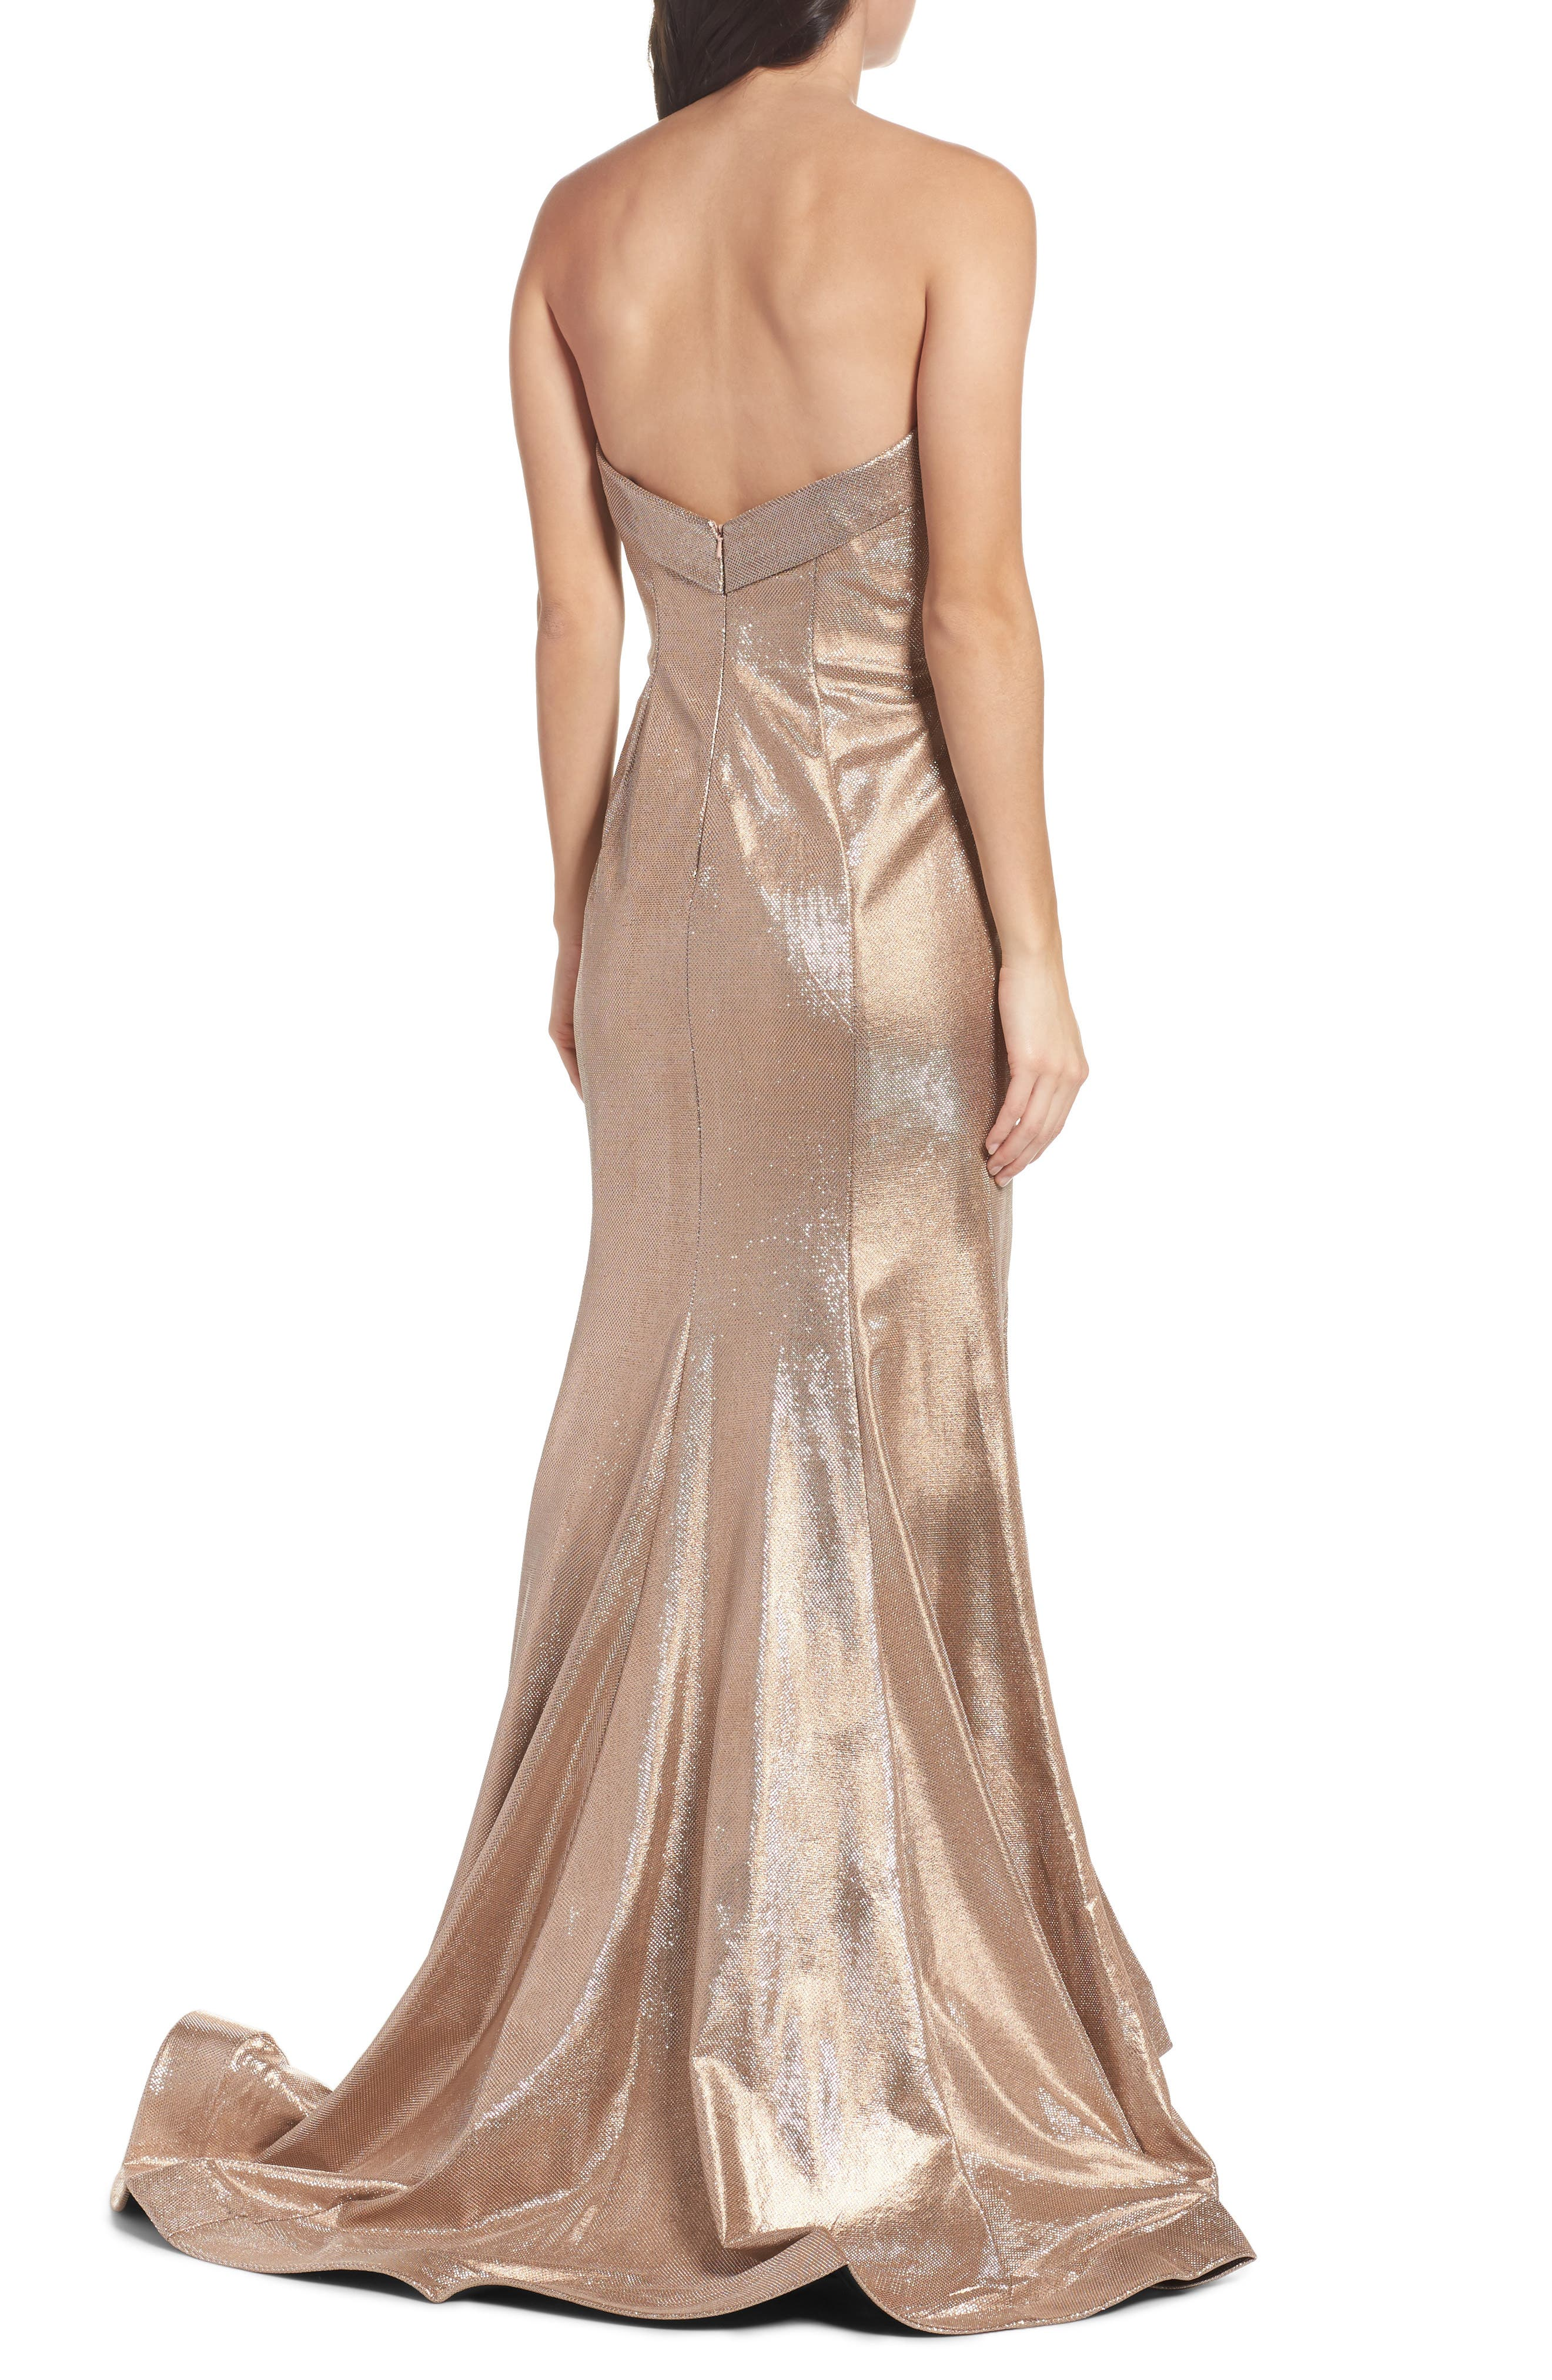 Metallic Mermaid Gown,                             Alternate thumbnail 2, color,                             Nude/Silver